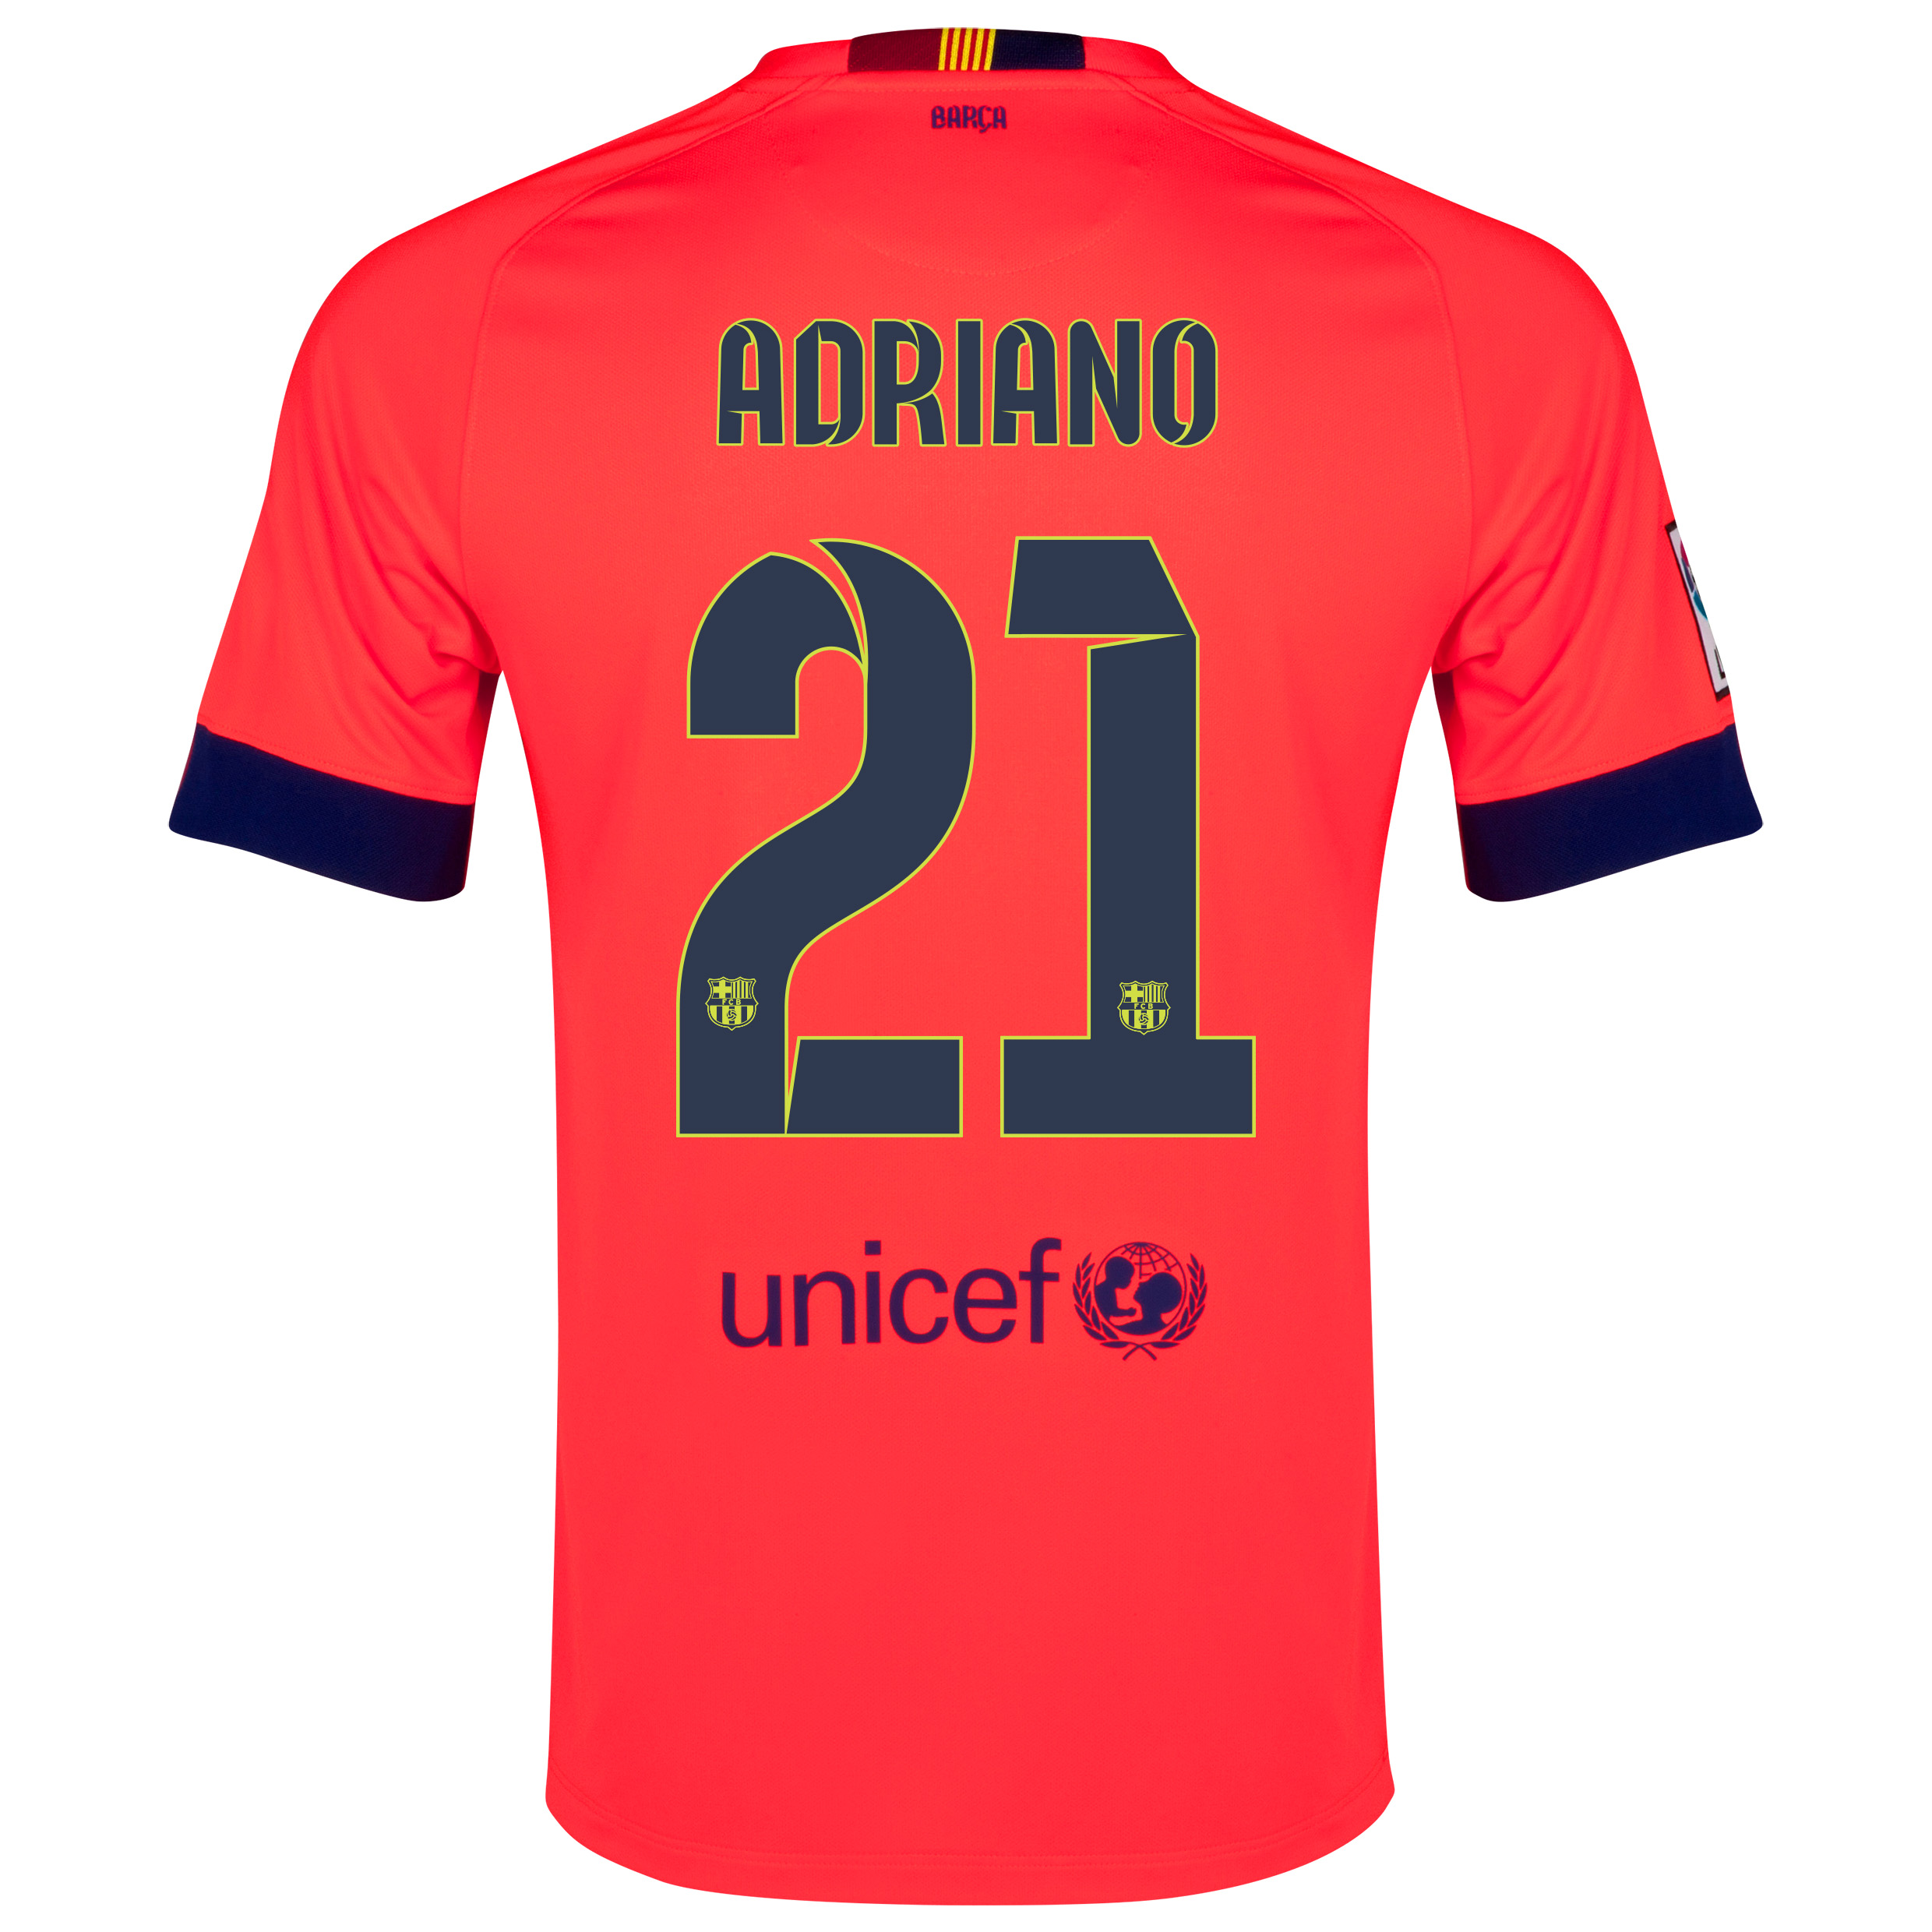 Barcelona Away Shirt 2014/15 - Kids Red with Adriano 21 printing